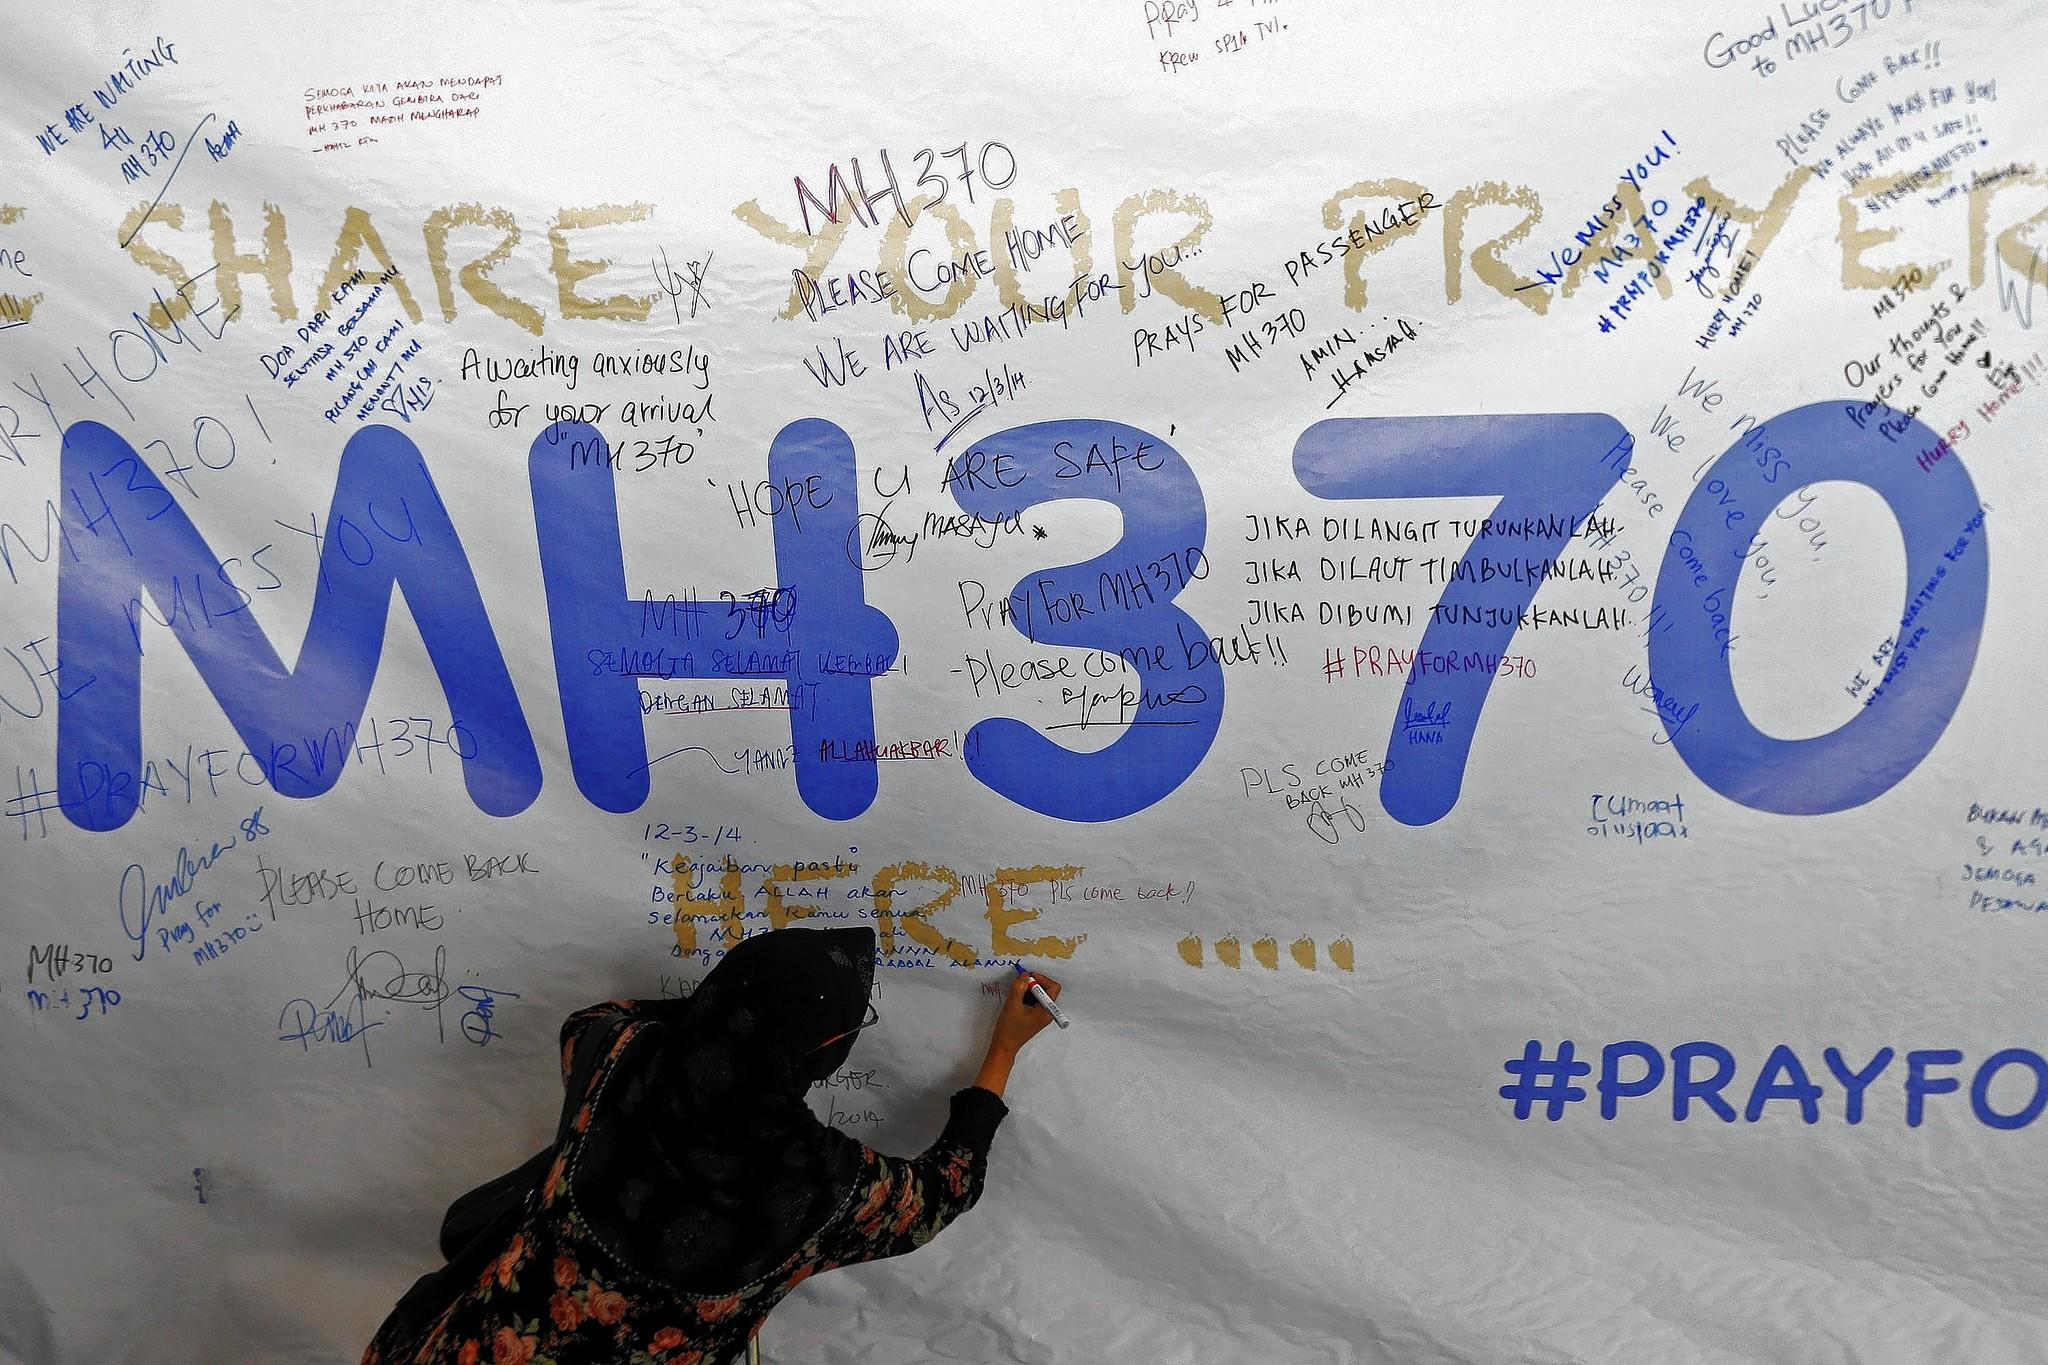 A woman writes a message of support and hope for the passengers of the missing Malaysia Airlines MH370 on a banner at Kuala Lumpur International Airport.